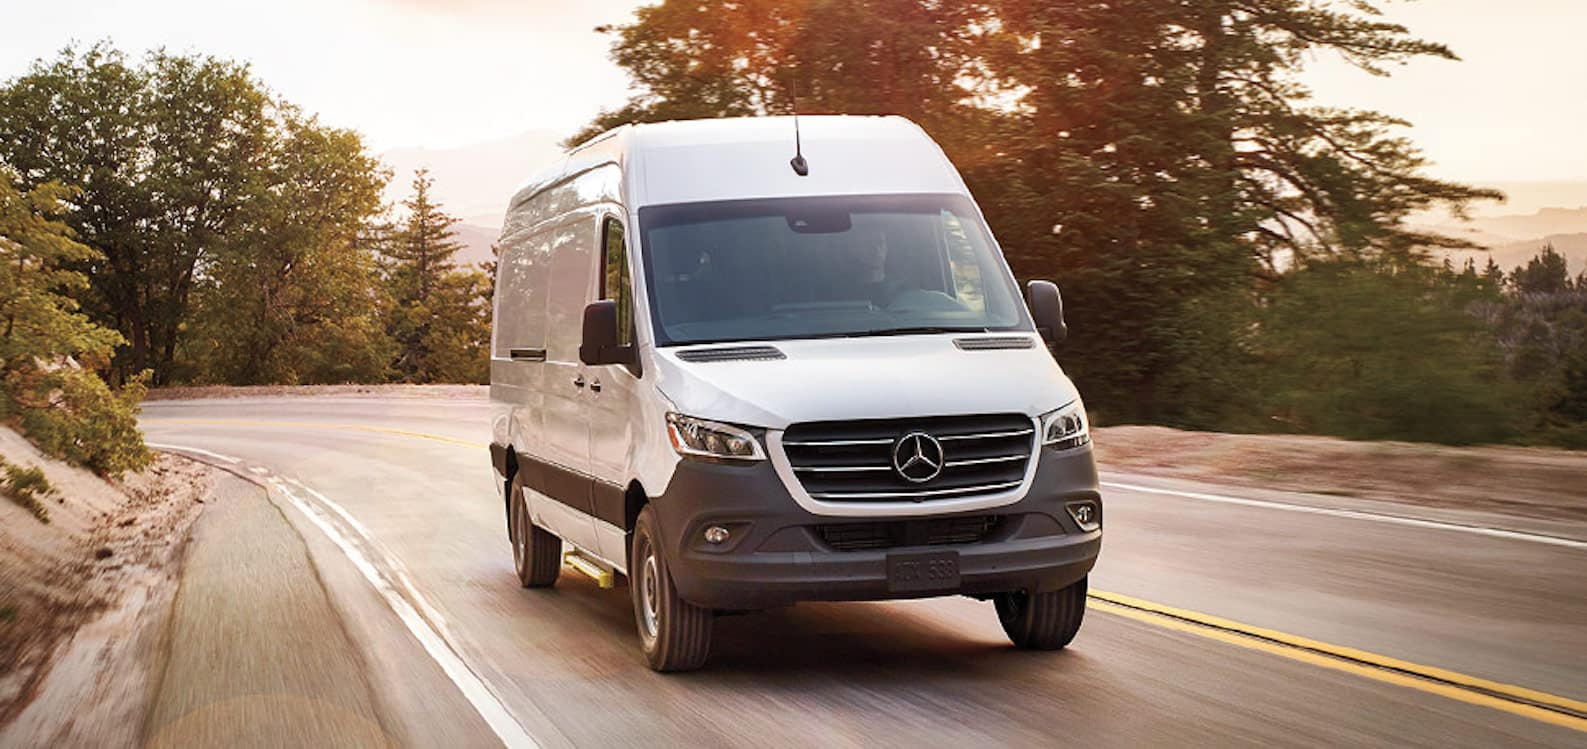 2020-Mercedes-Benz Sprinter Van